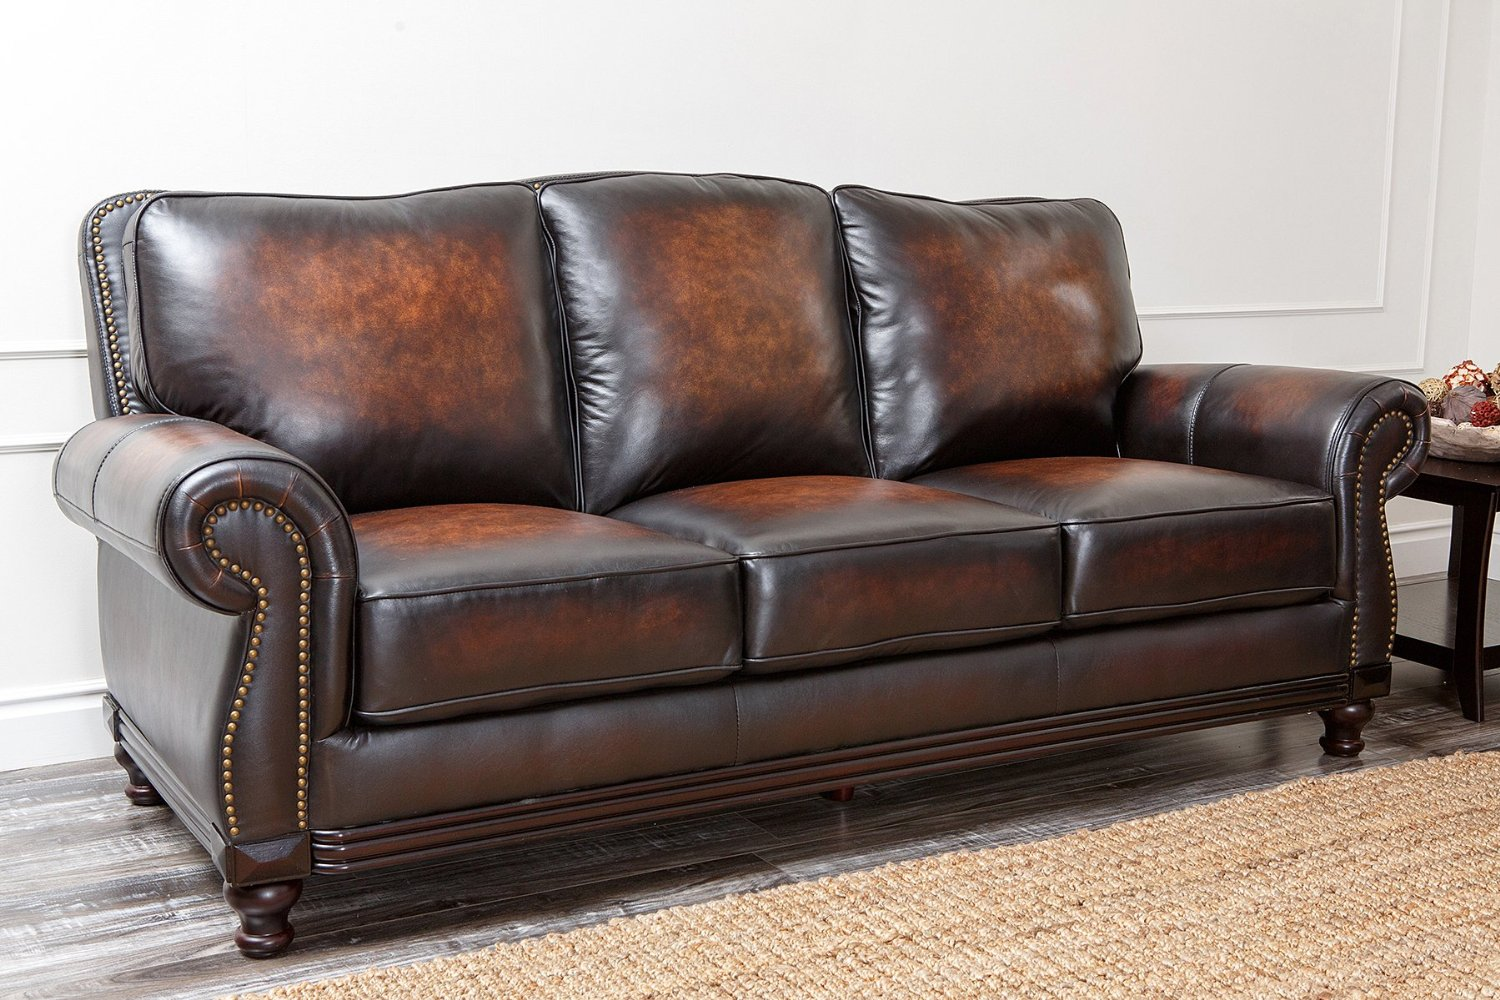 review of the best leather sofas that you can get off amazon